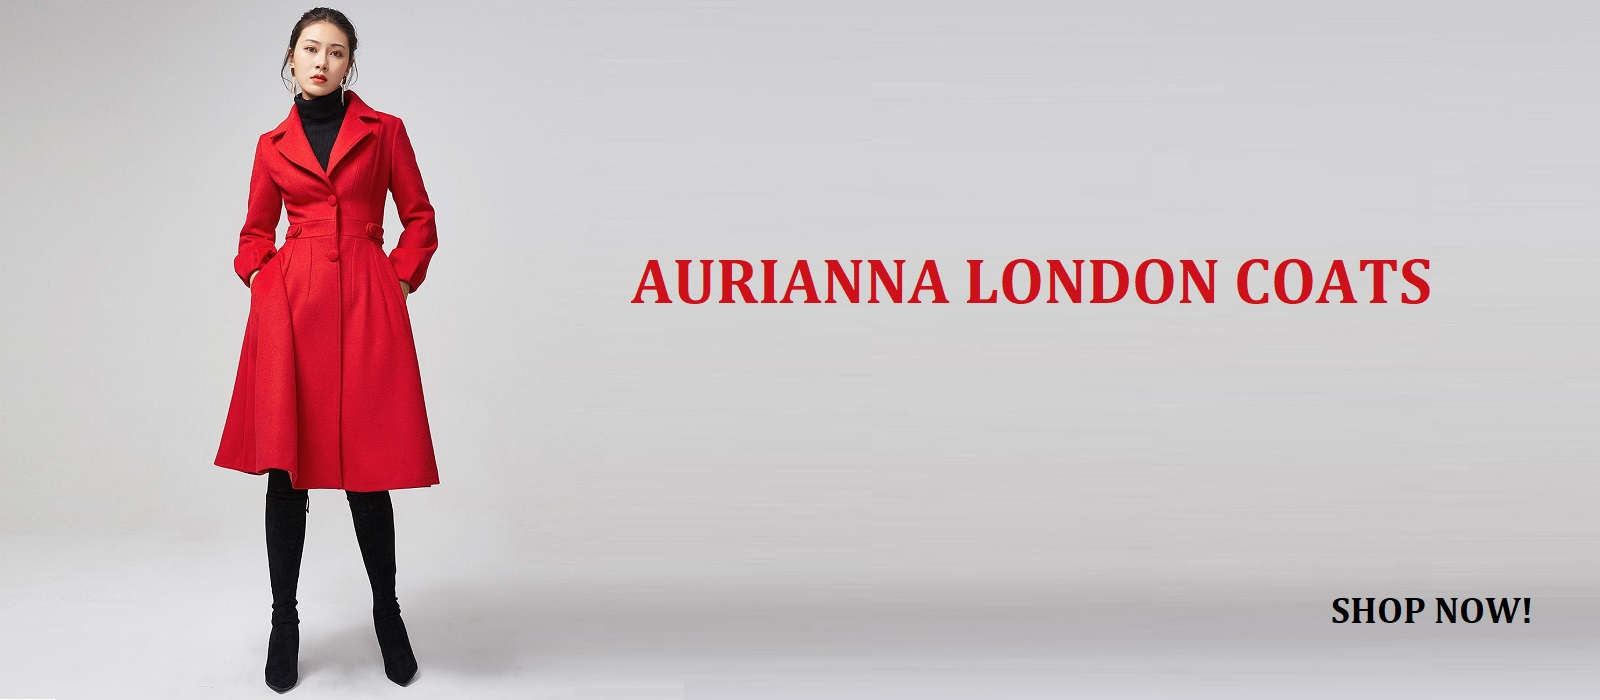 Aurianna London Coats